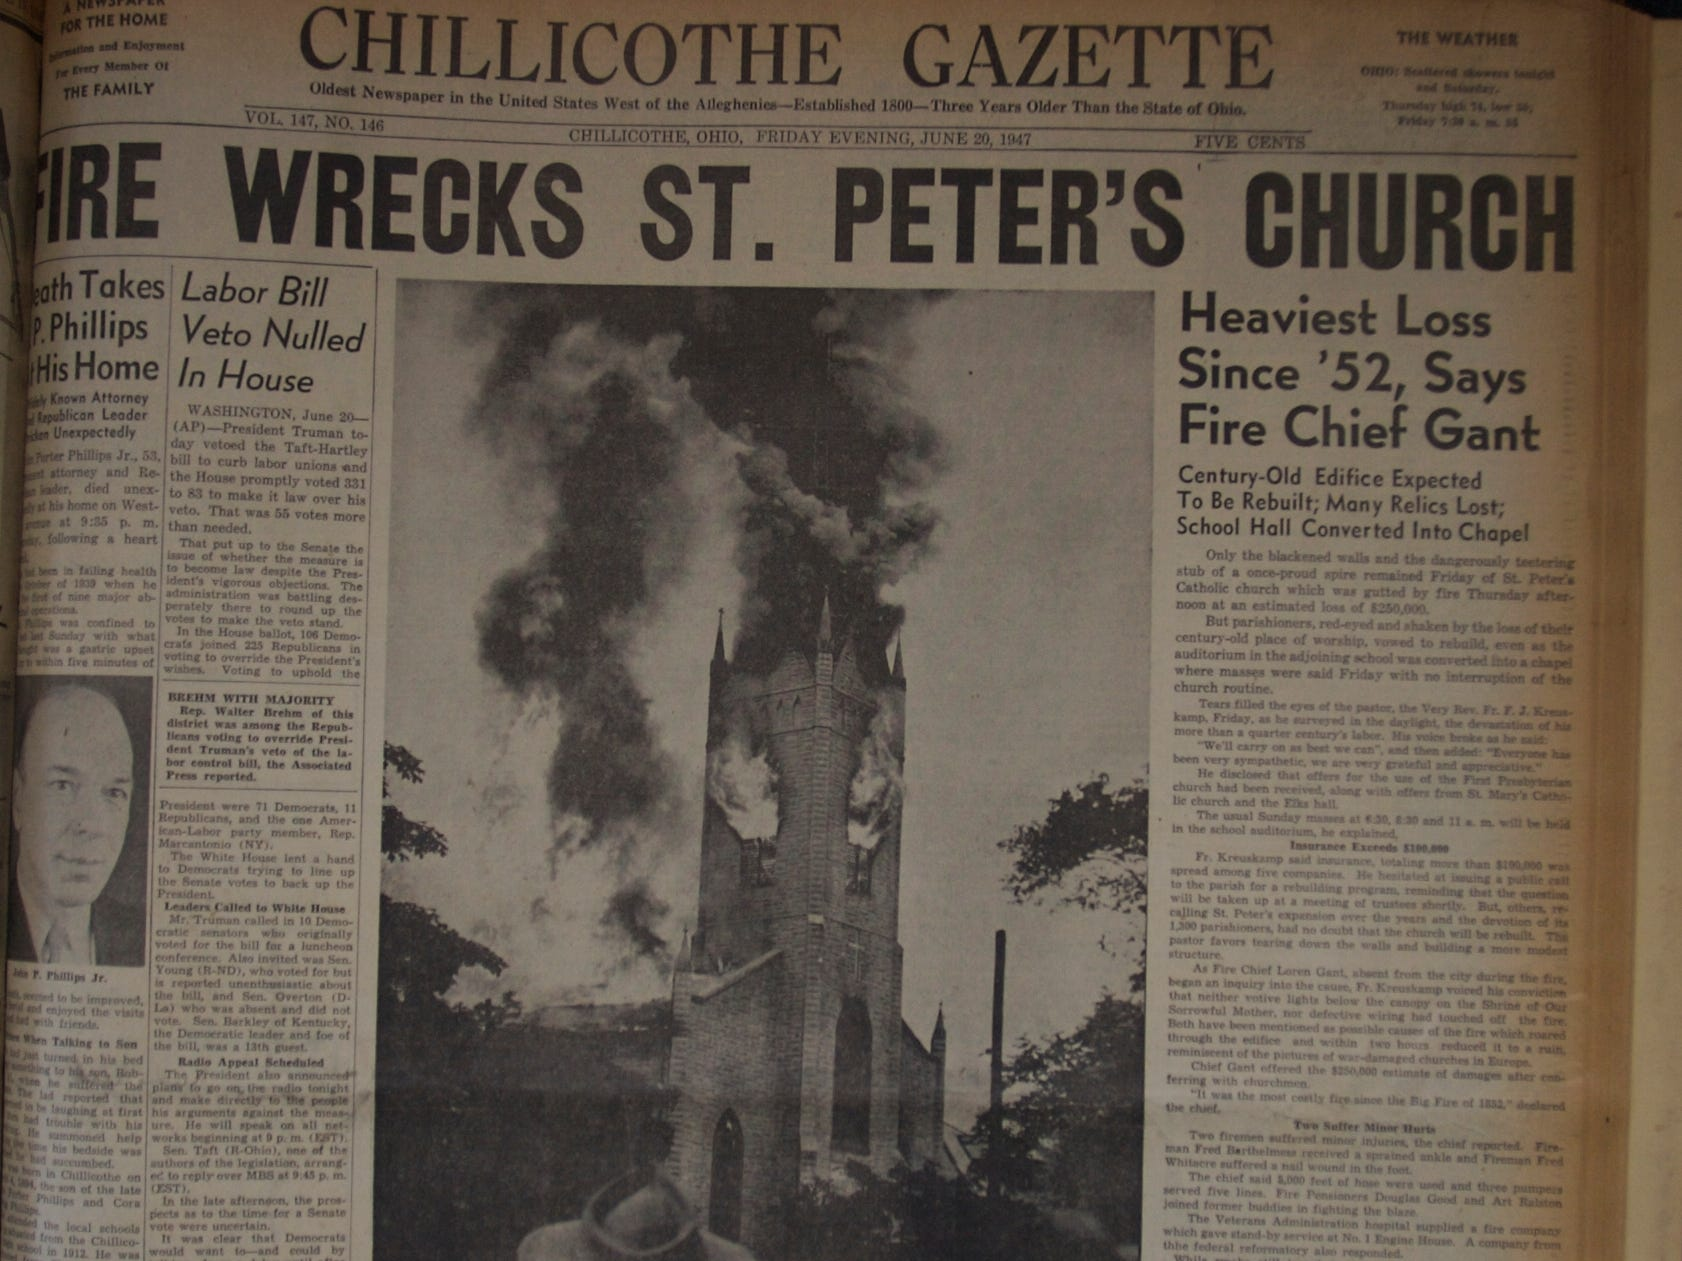 In 1947, the fire at St. Peter's Church prompted the city's adoption of a fire code for businesses and public buildings.